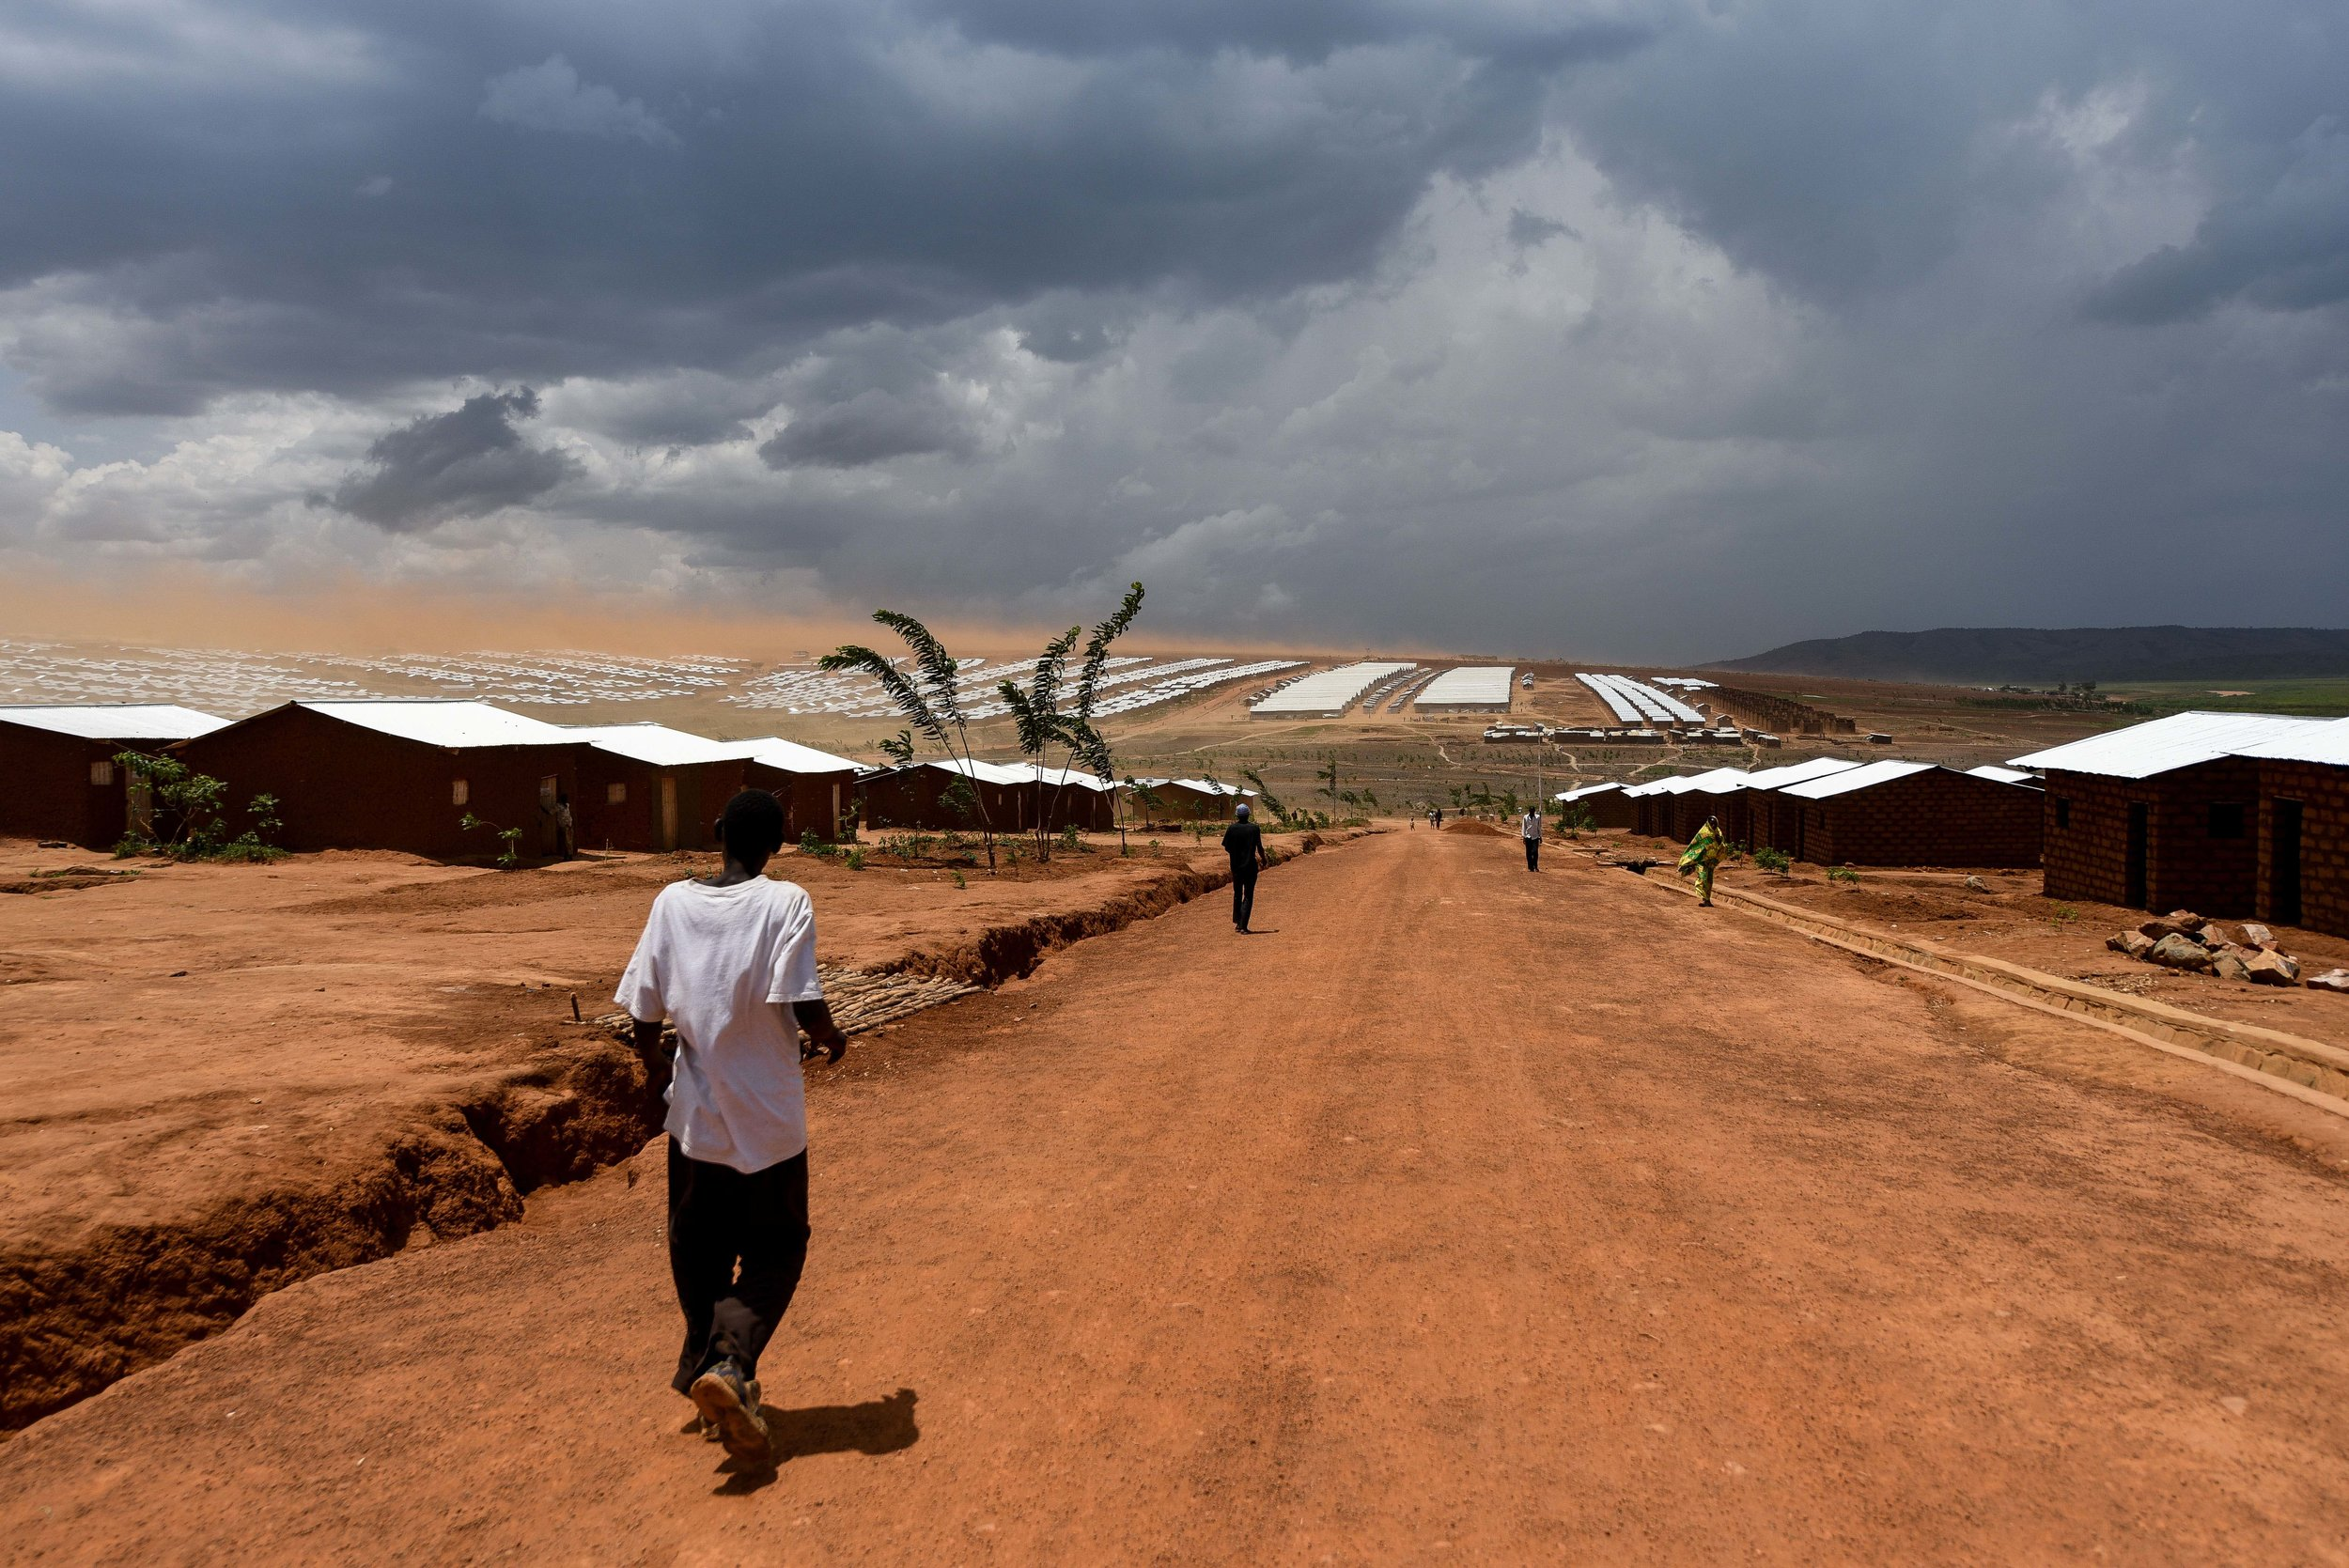 A sprawling overview of the Mahama Refugee Camp in Kirehe District, located in Rwanda's Eastern Province.